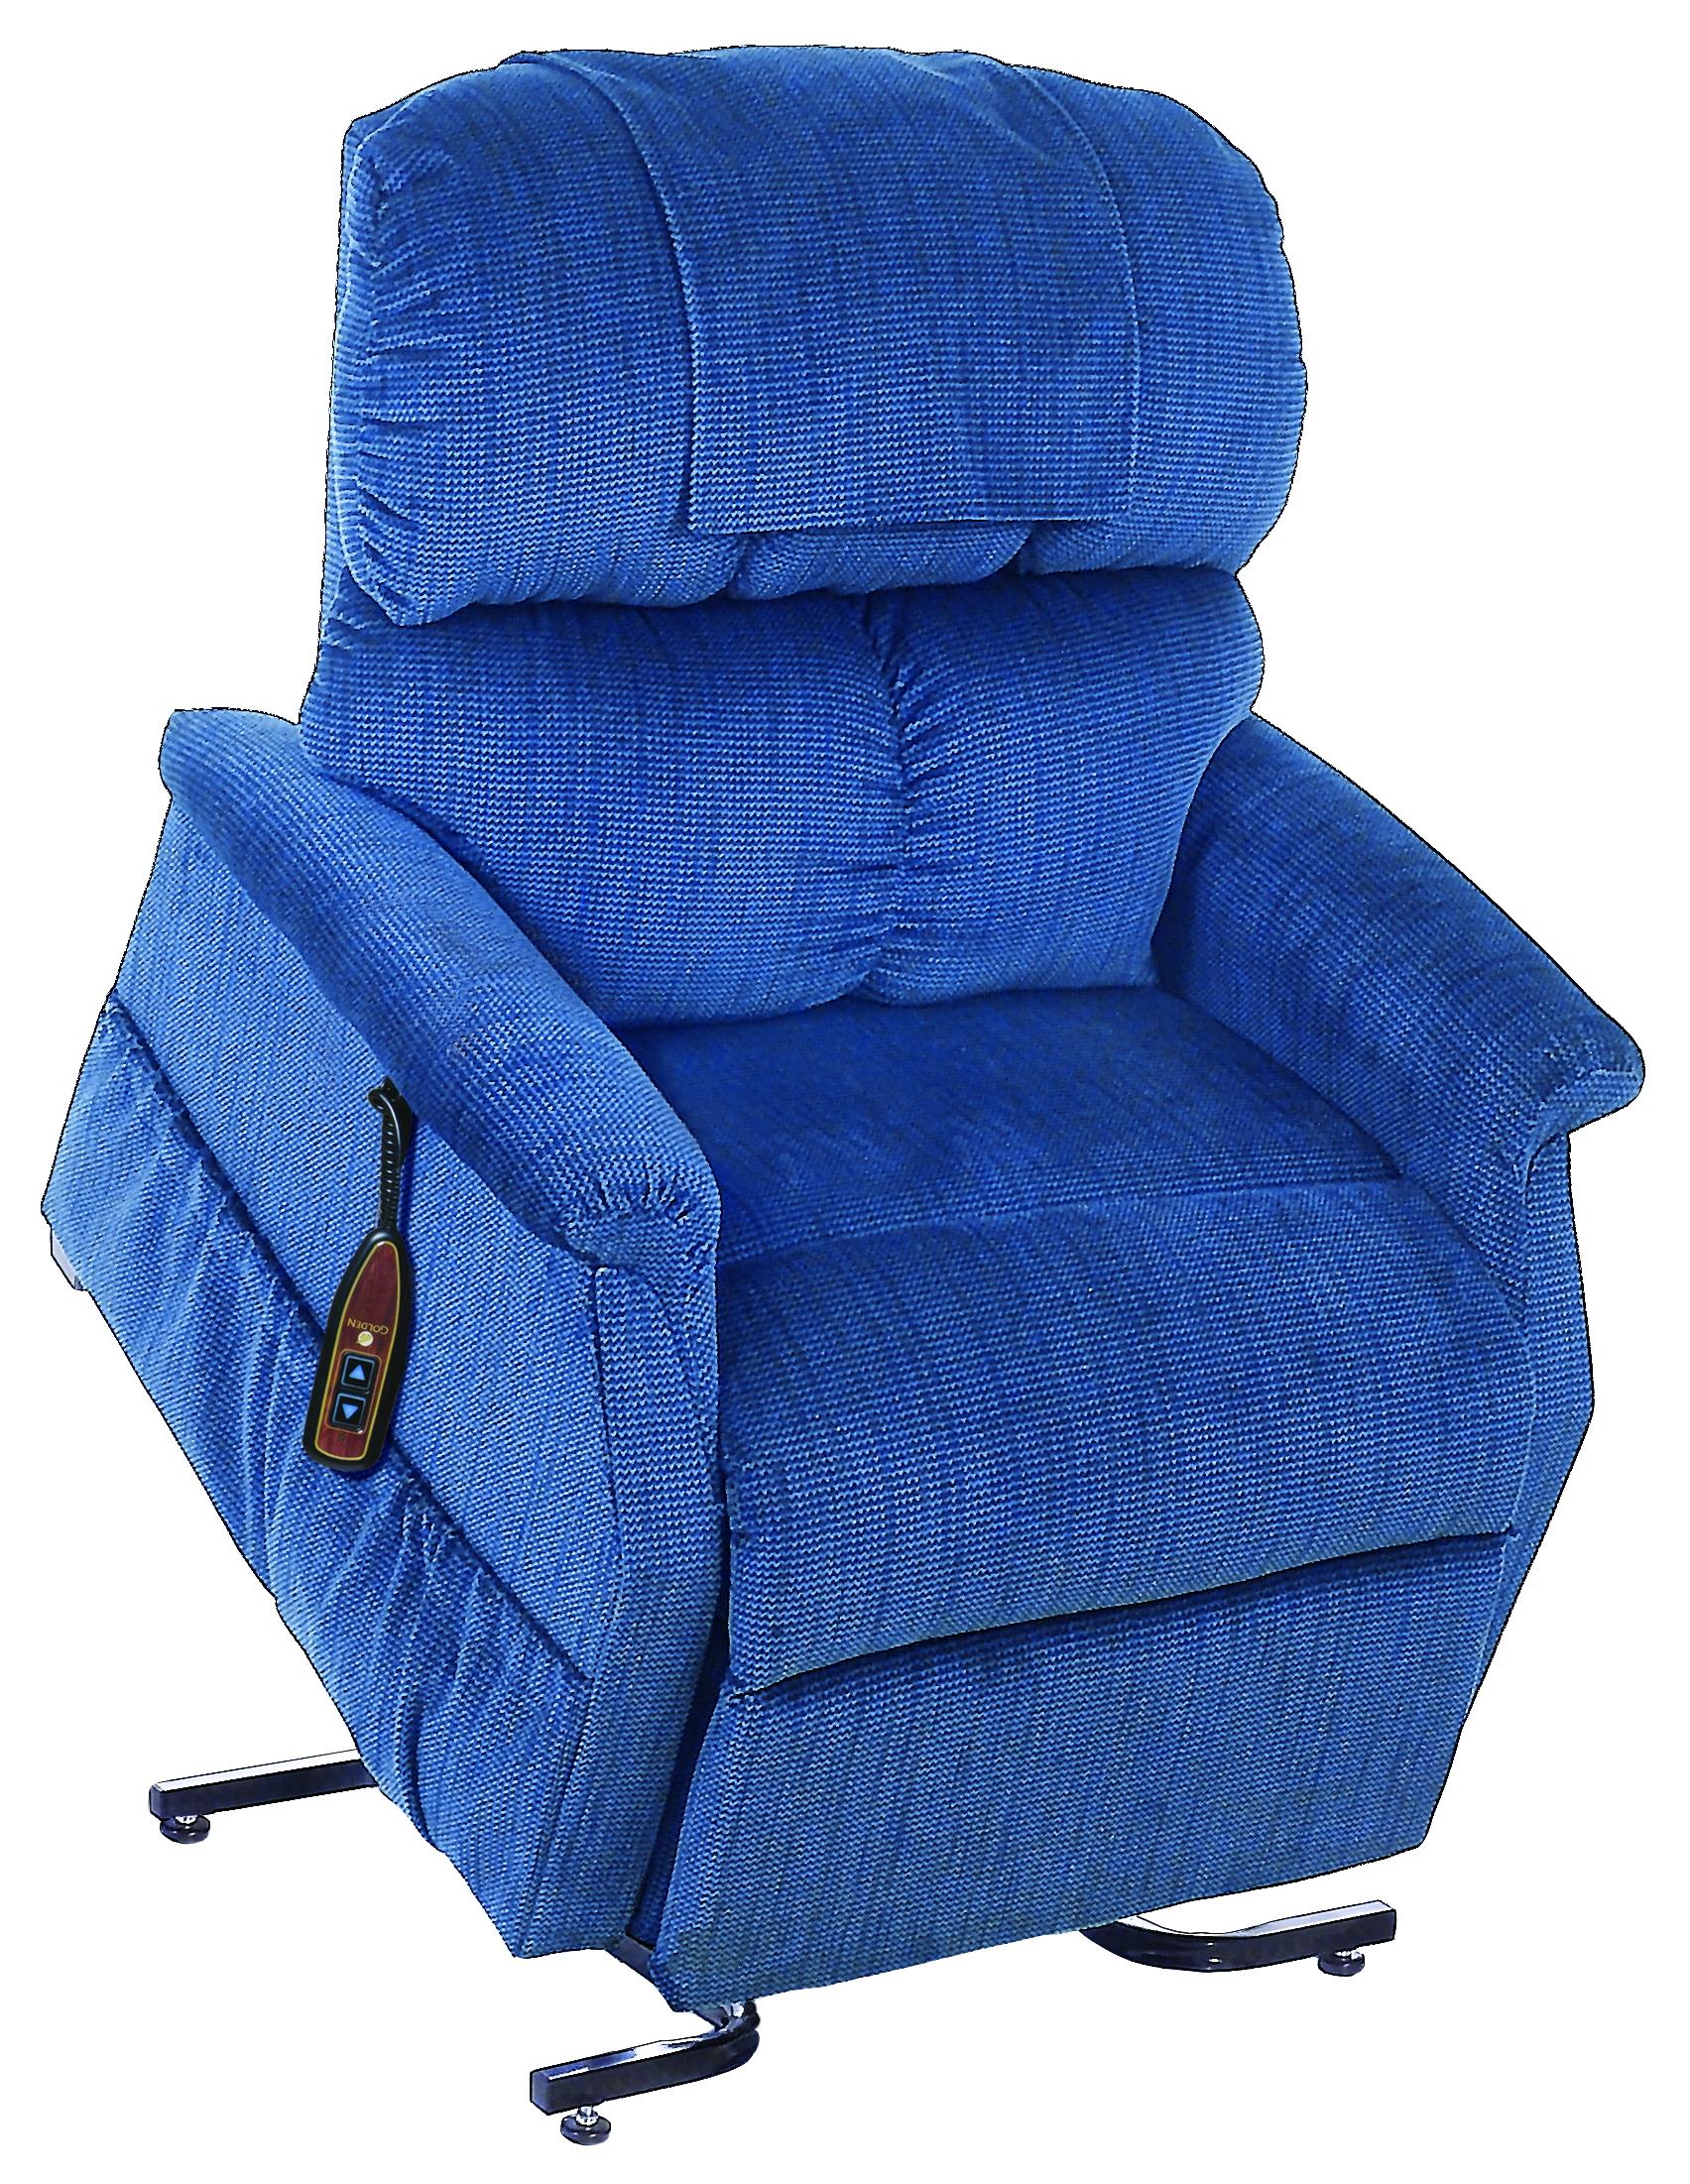 Photo of Golden Technologies Comforter Lift Chair, Size Wide Small